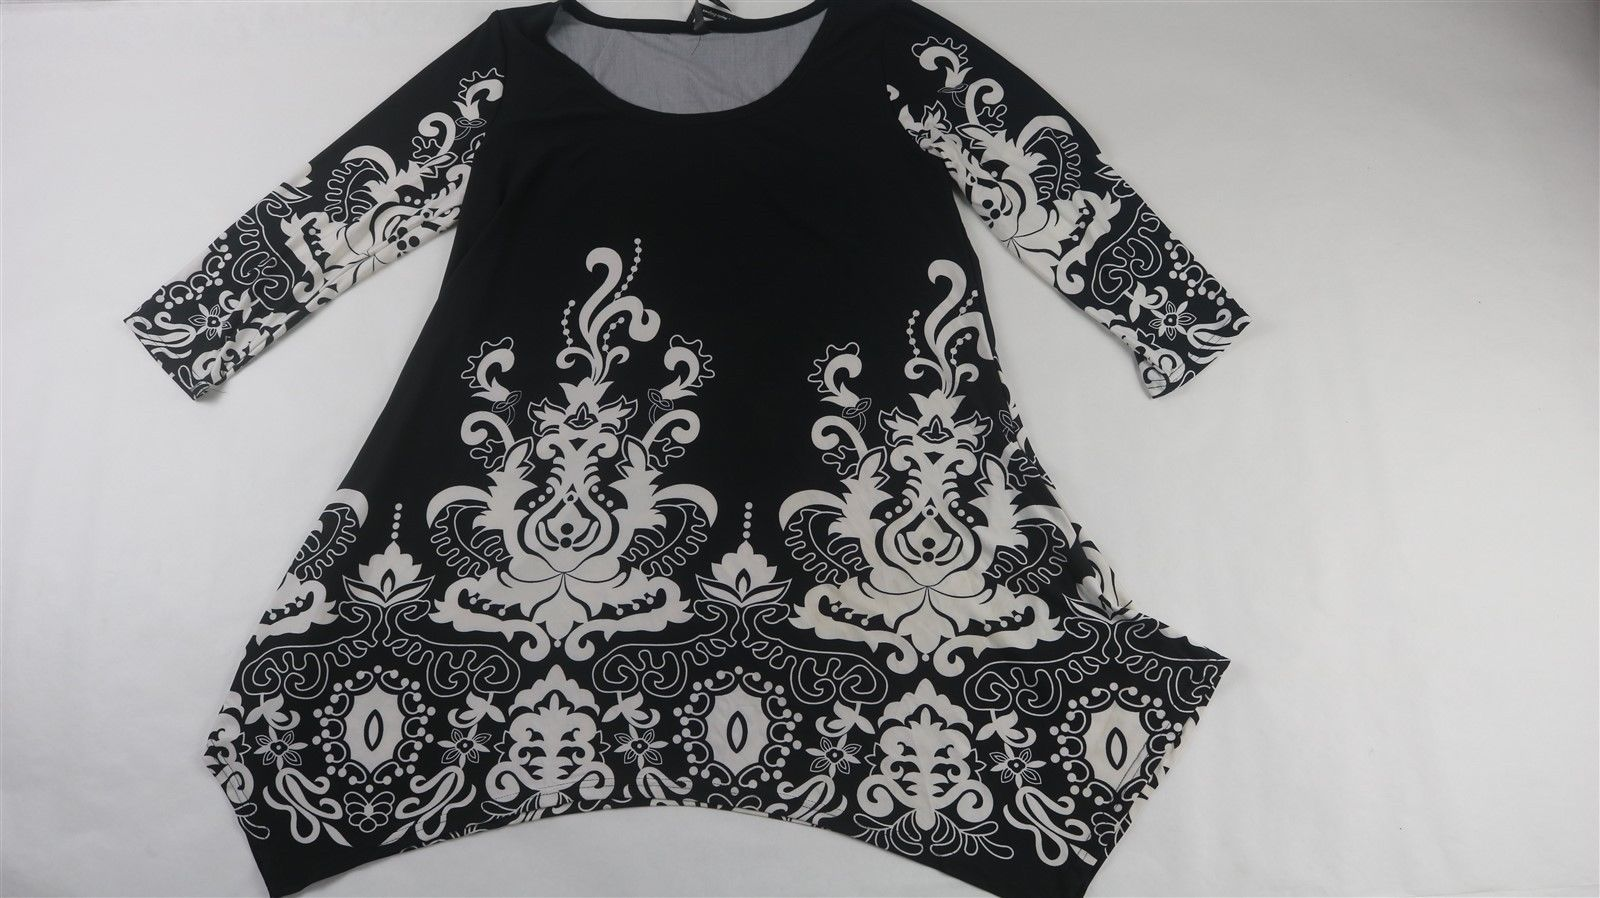 $  16.50 (17 Bids)End Date: Apr-16 19:55Bid now  |  Add to watch listBuy this on eBay (Category:Women's Clothing)...